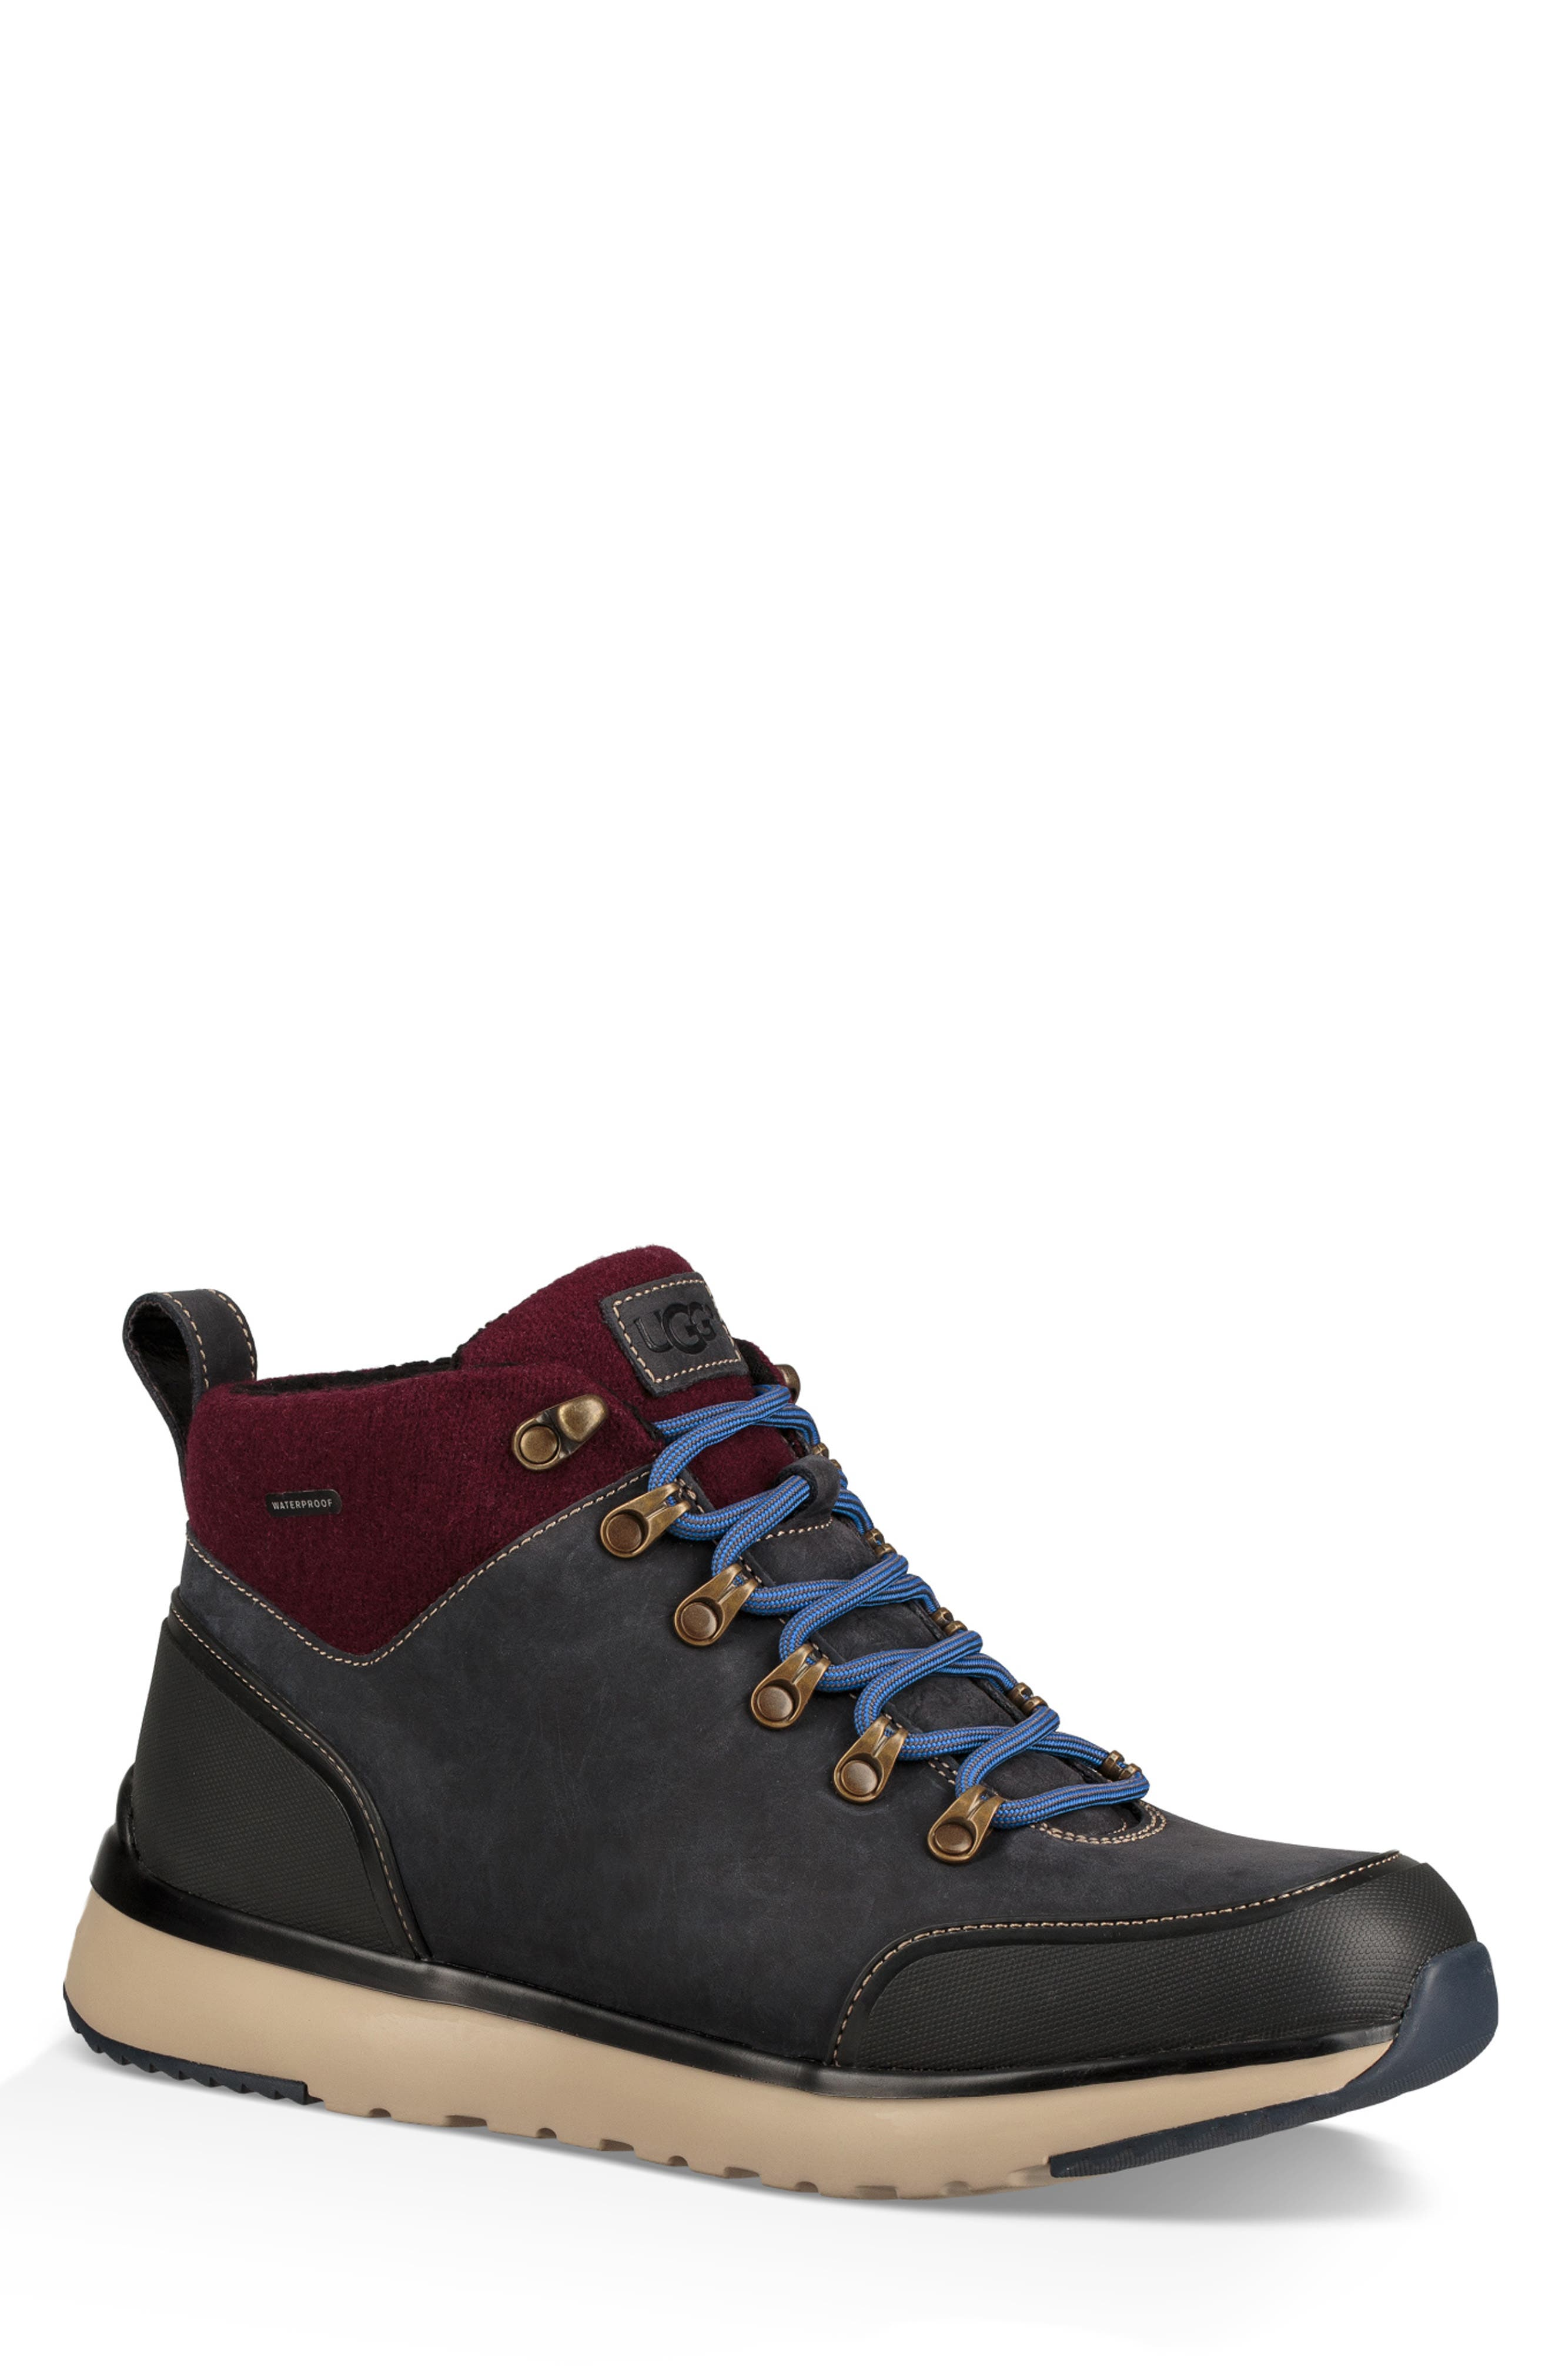 Olivert Hiking Waterproof Boot,                         Main,                         color, NAVY